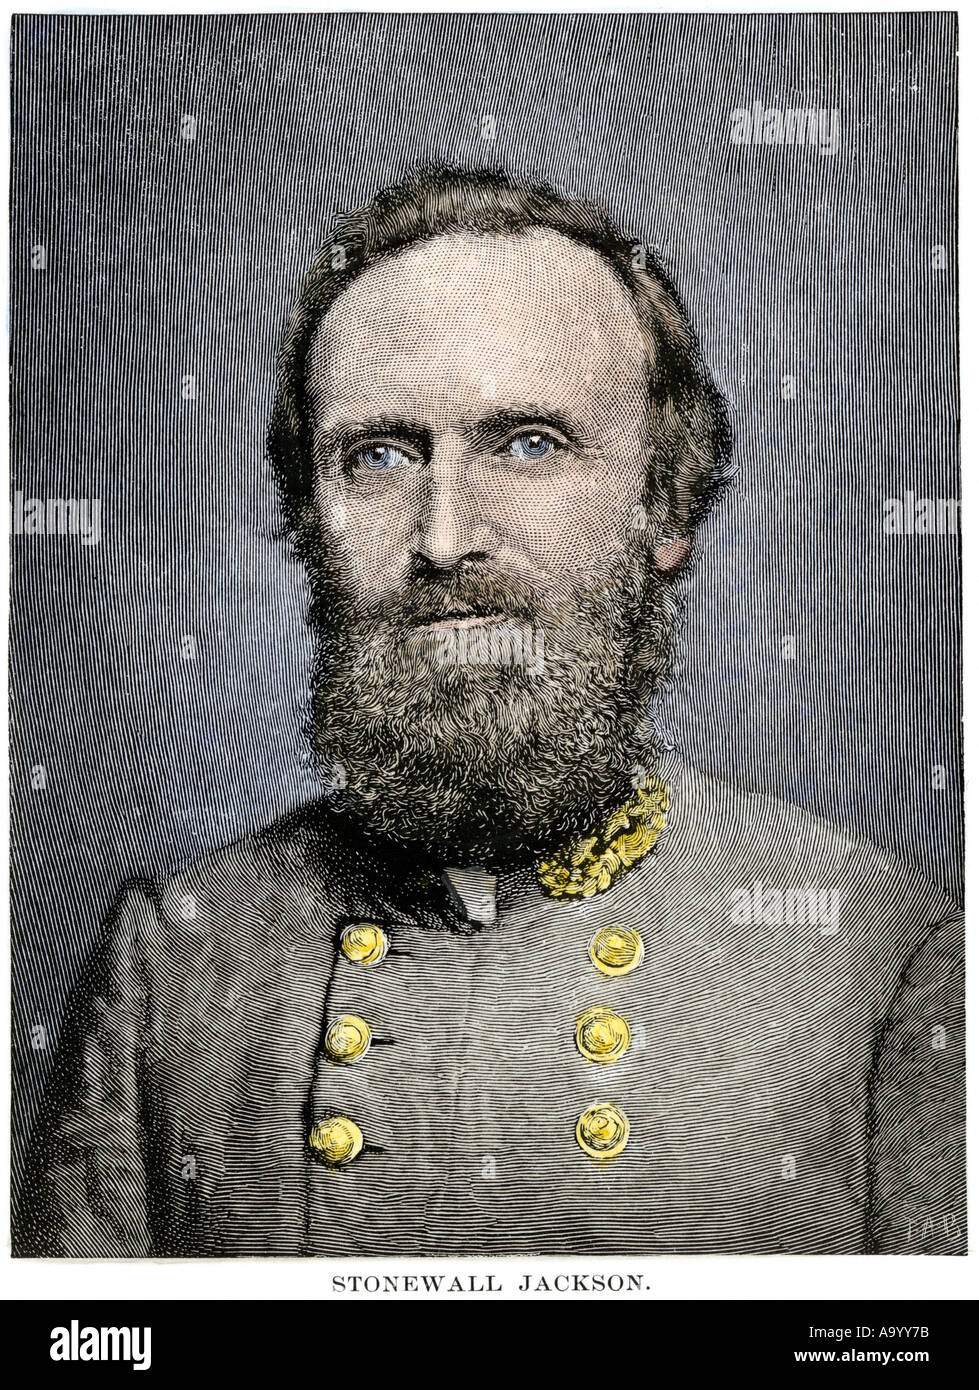 Confederate General Thomas Stonewall Jackson. Hand-colored woodcut - Stock Image